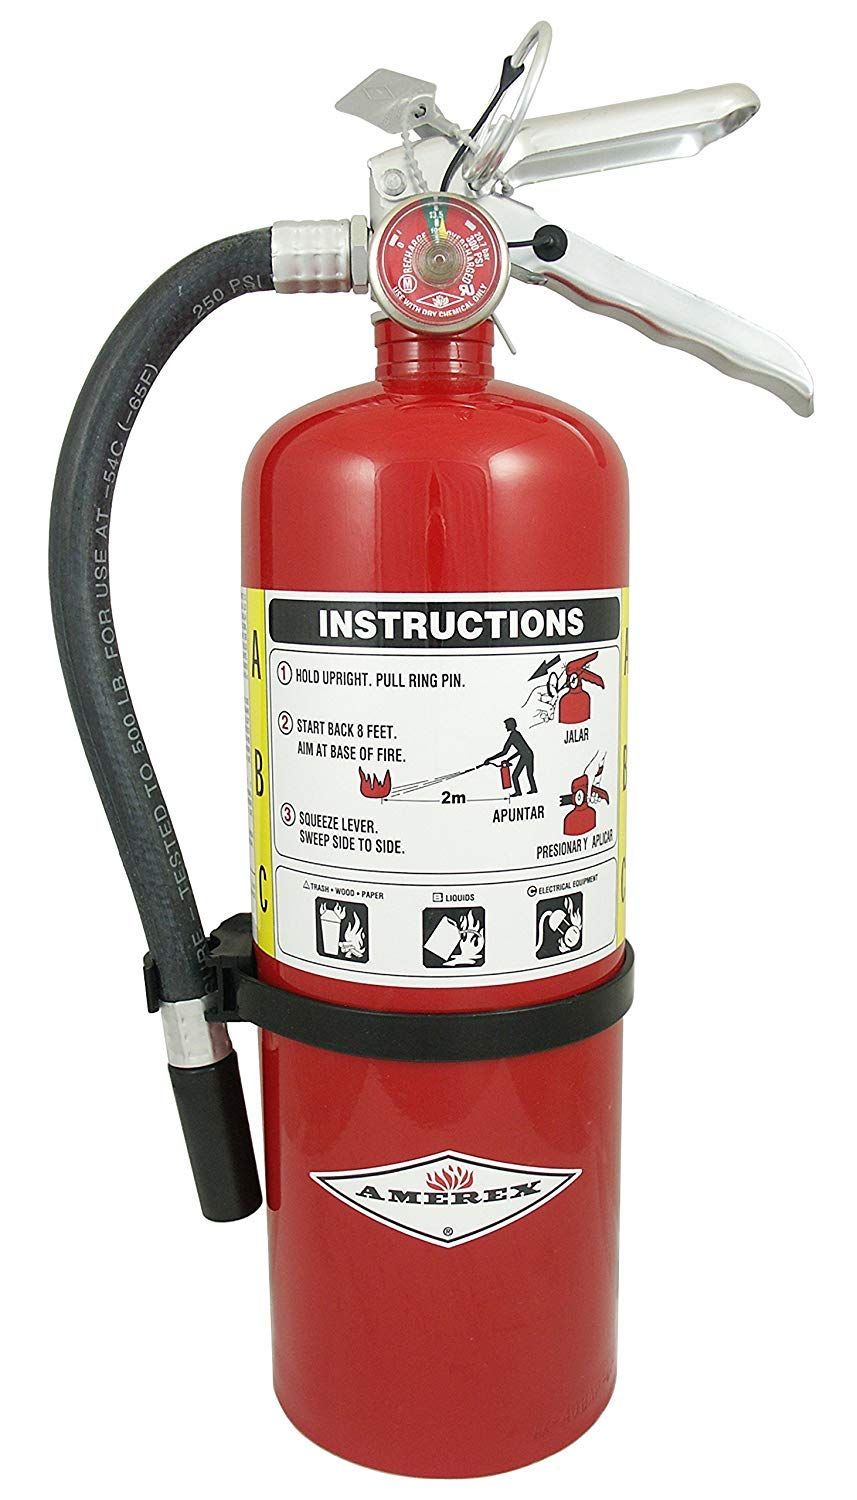 ABC Dry Chemical Class A B C Fire Extinguisher from Amerex